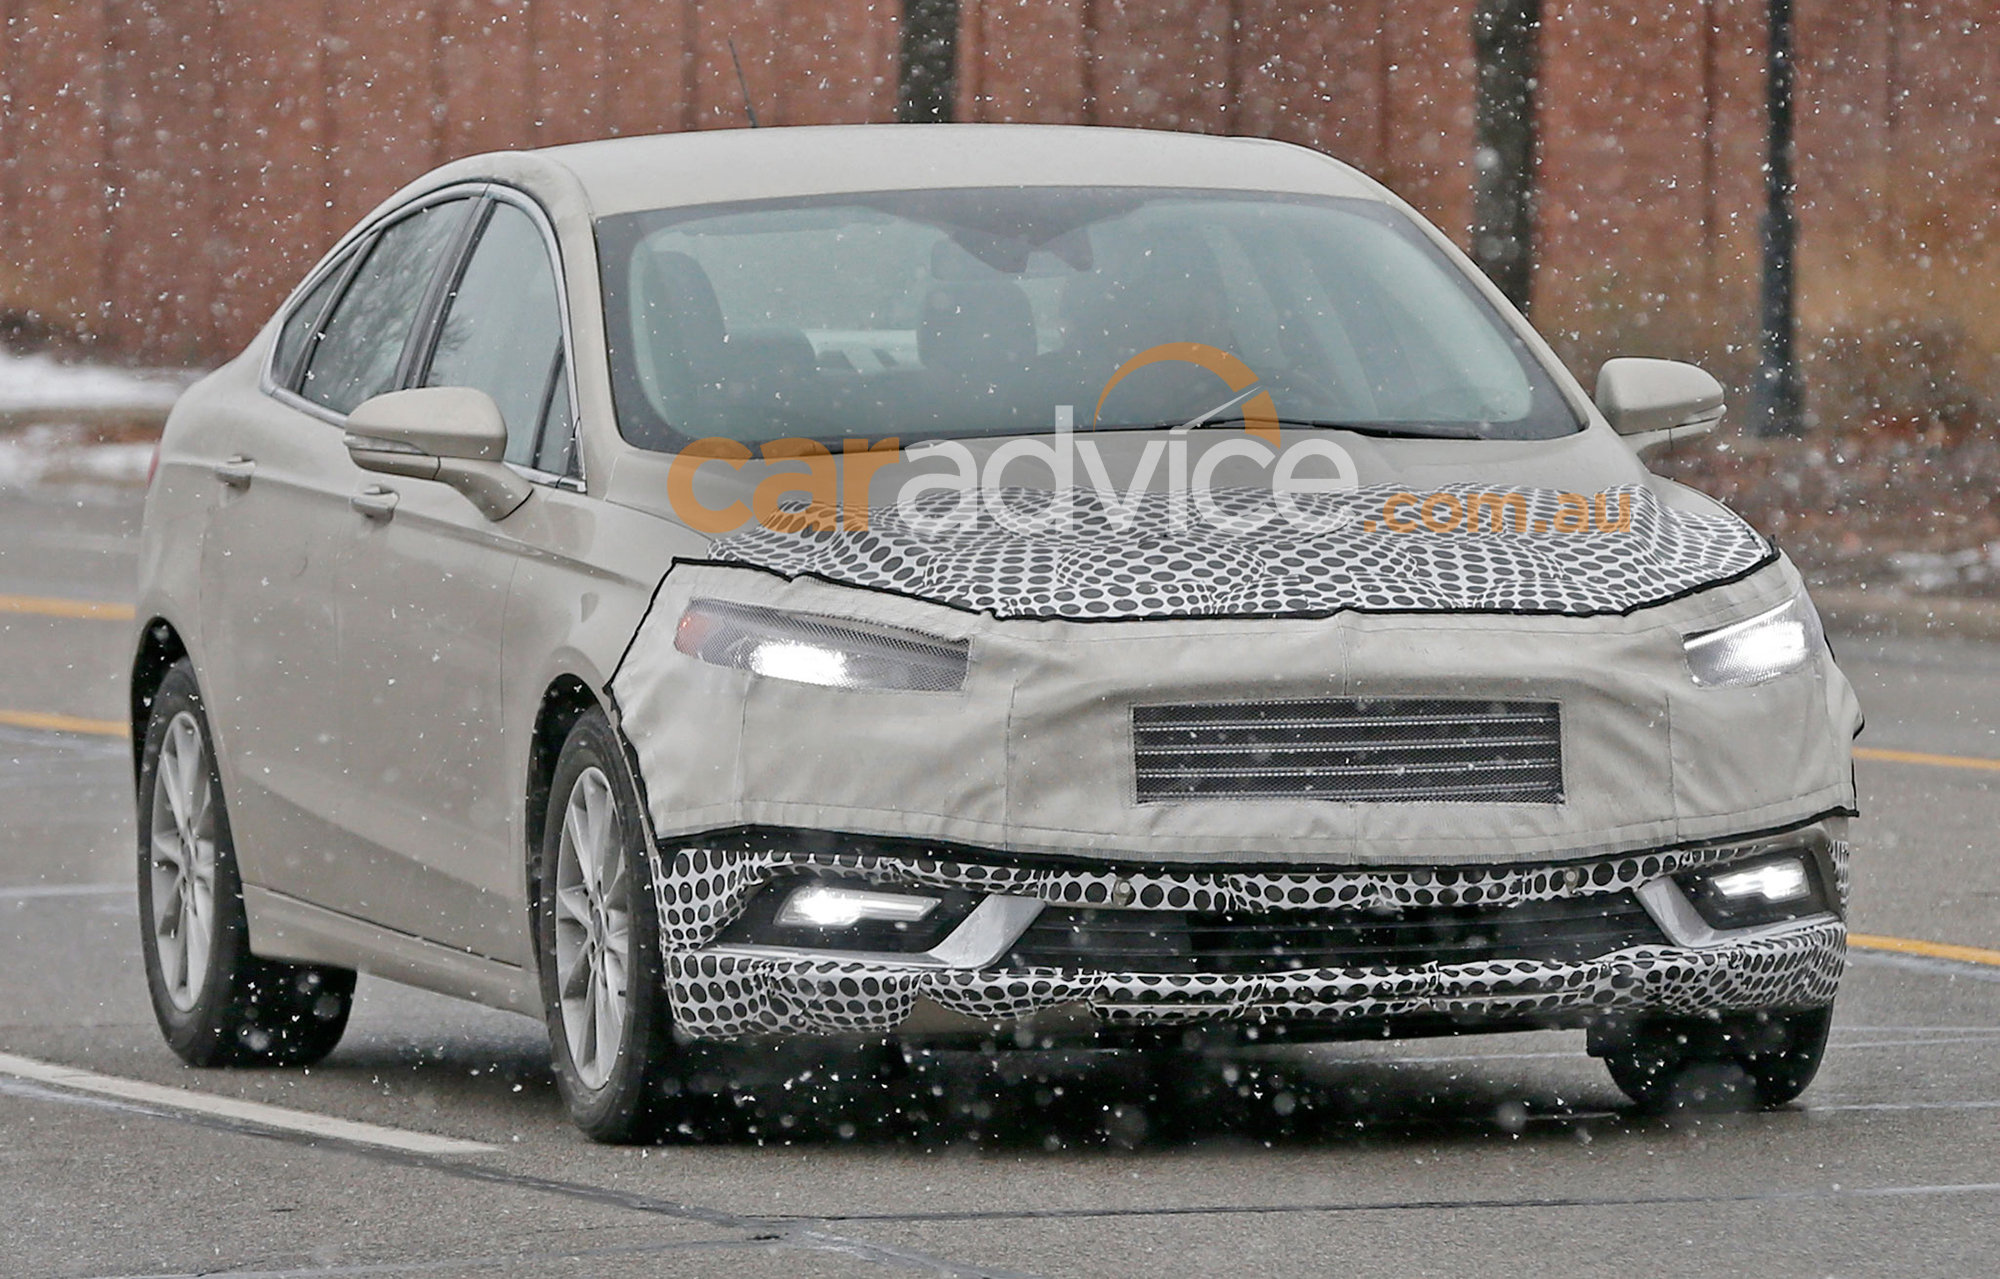 2016 ford mondeo facelift spied testing in detroit photos caradvice. Black Bedroom Furniture Sets. Home Design Ideas